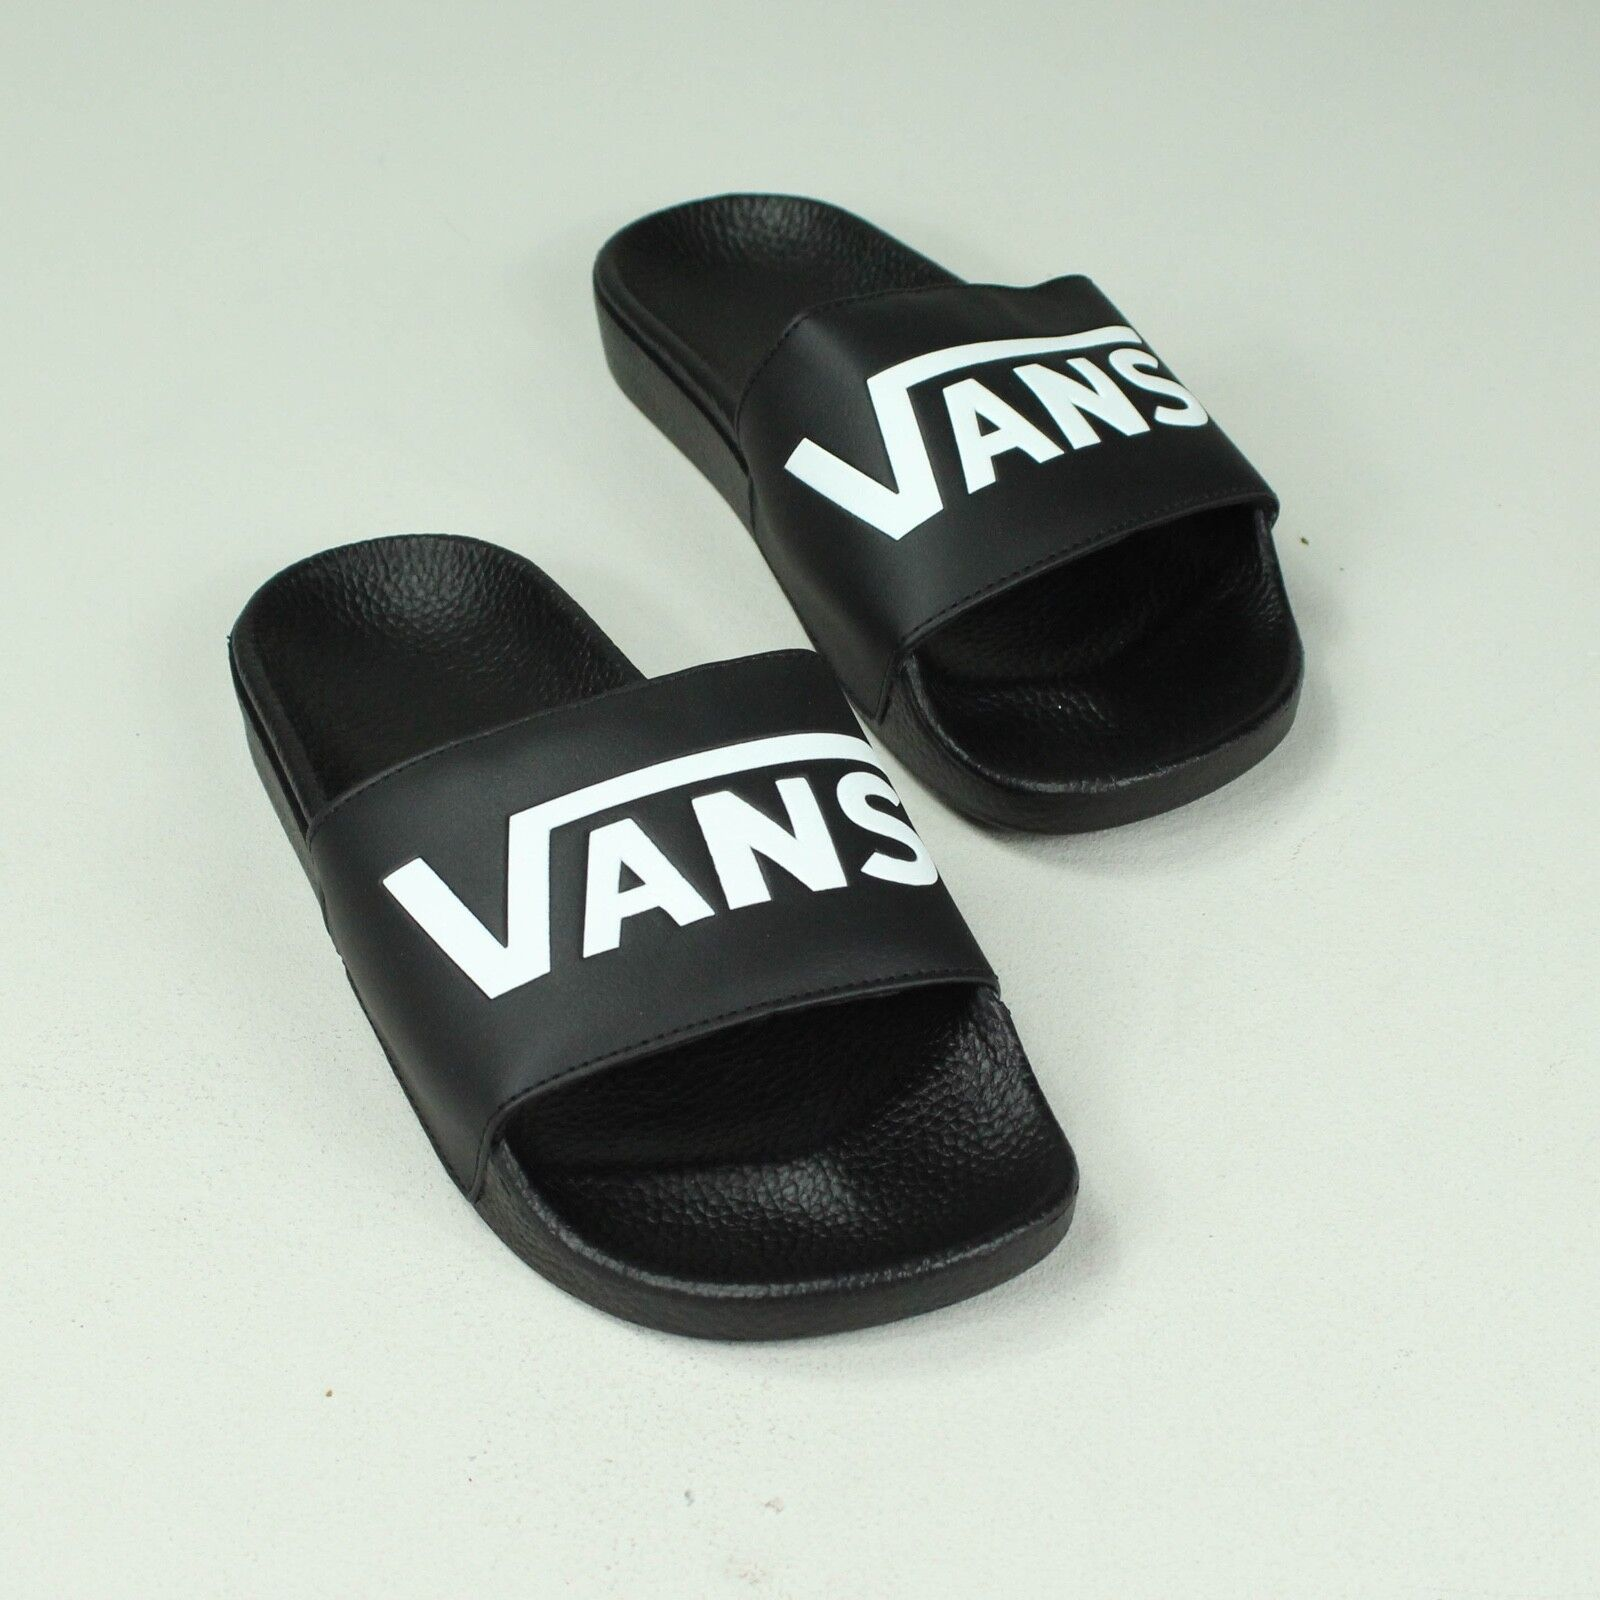 2771745a25 Details about Vans Classic Slip On Sandals Sliders Slipper Brand New in UK  Size 6